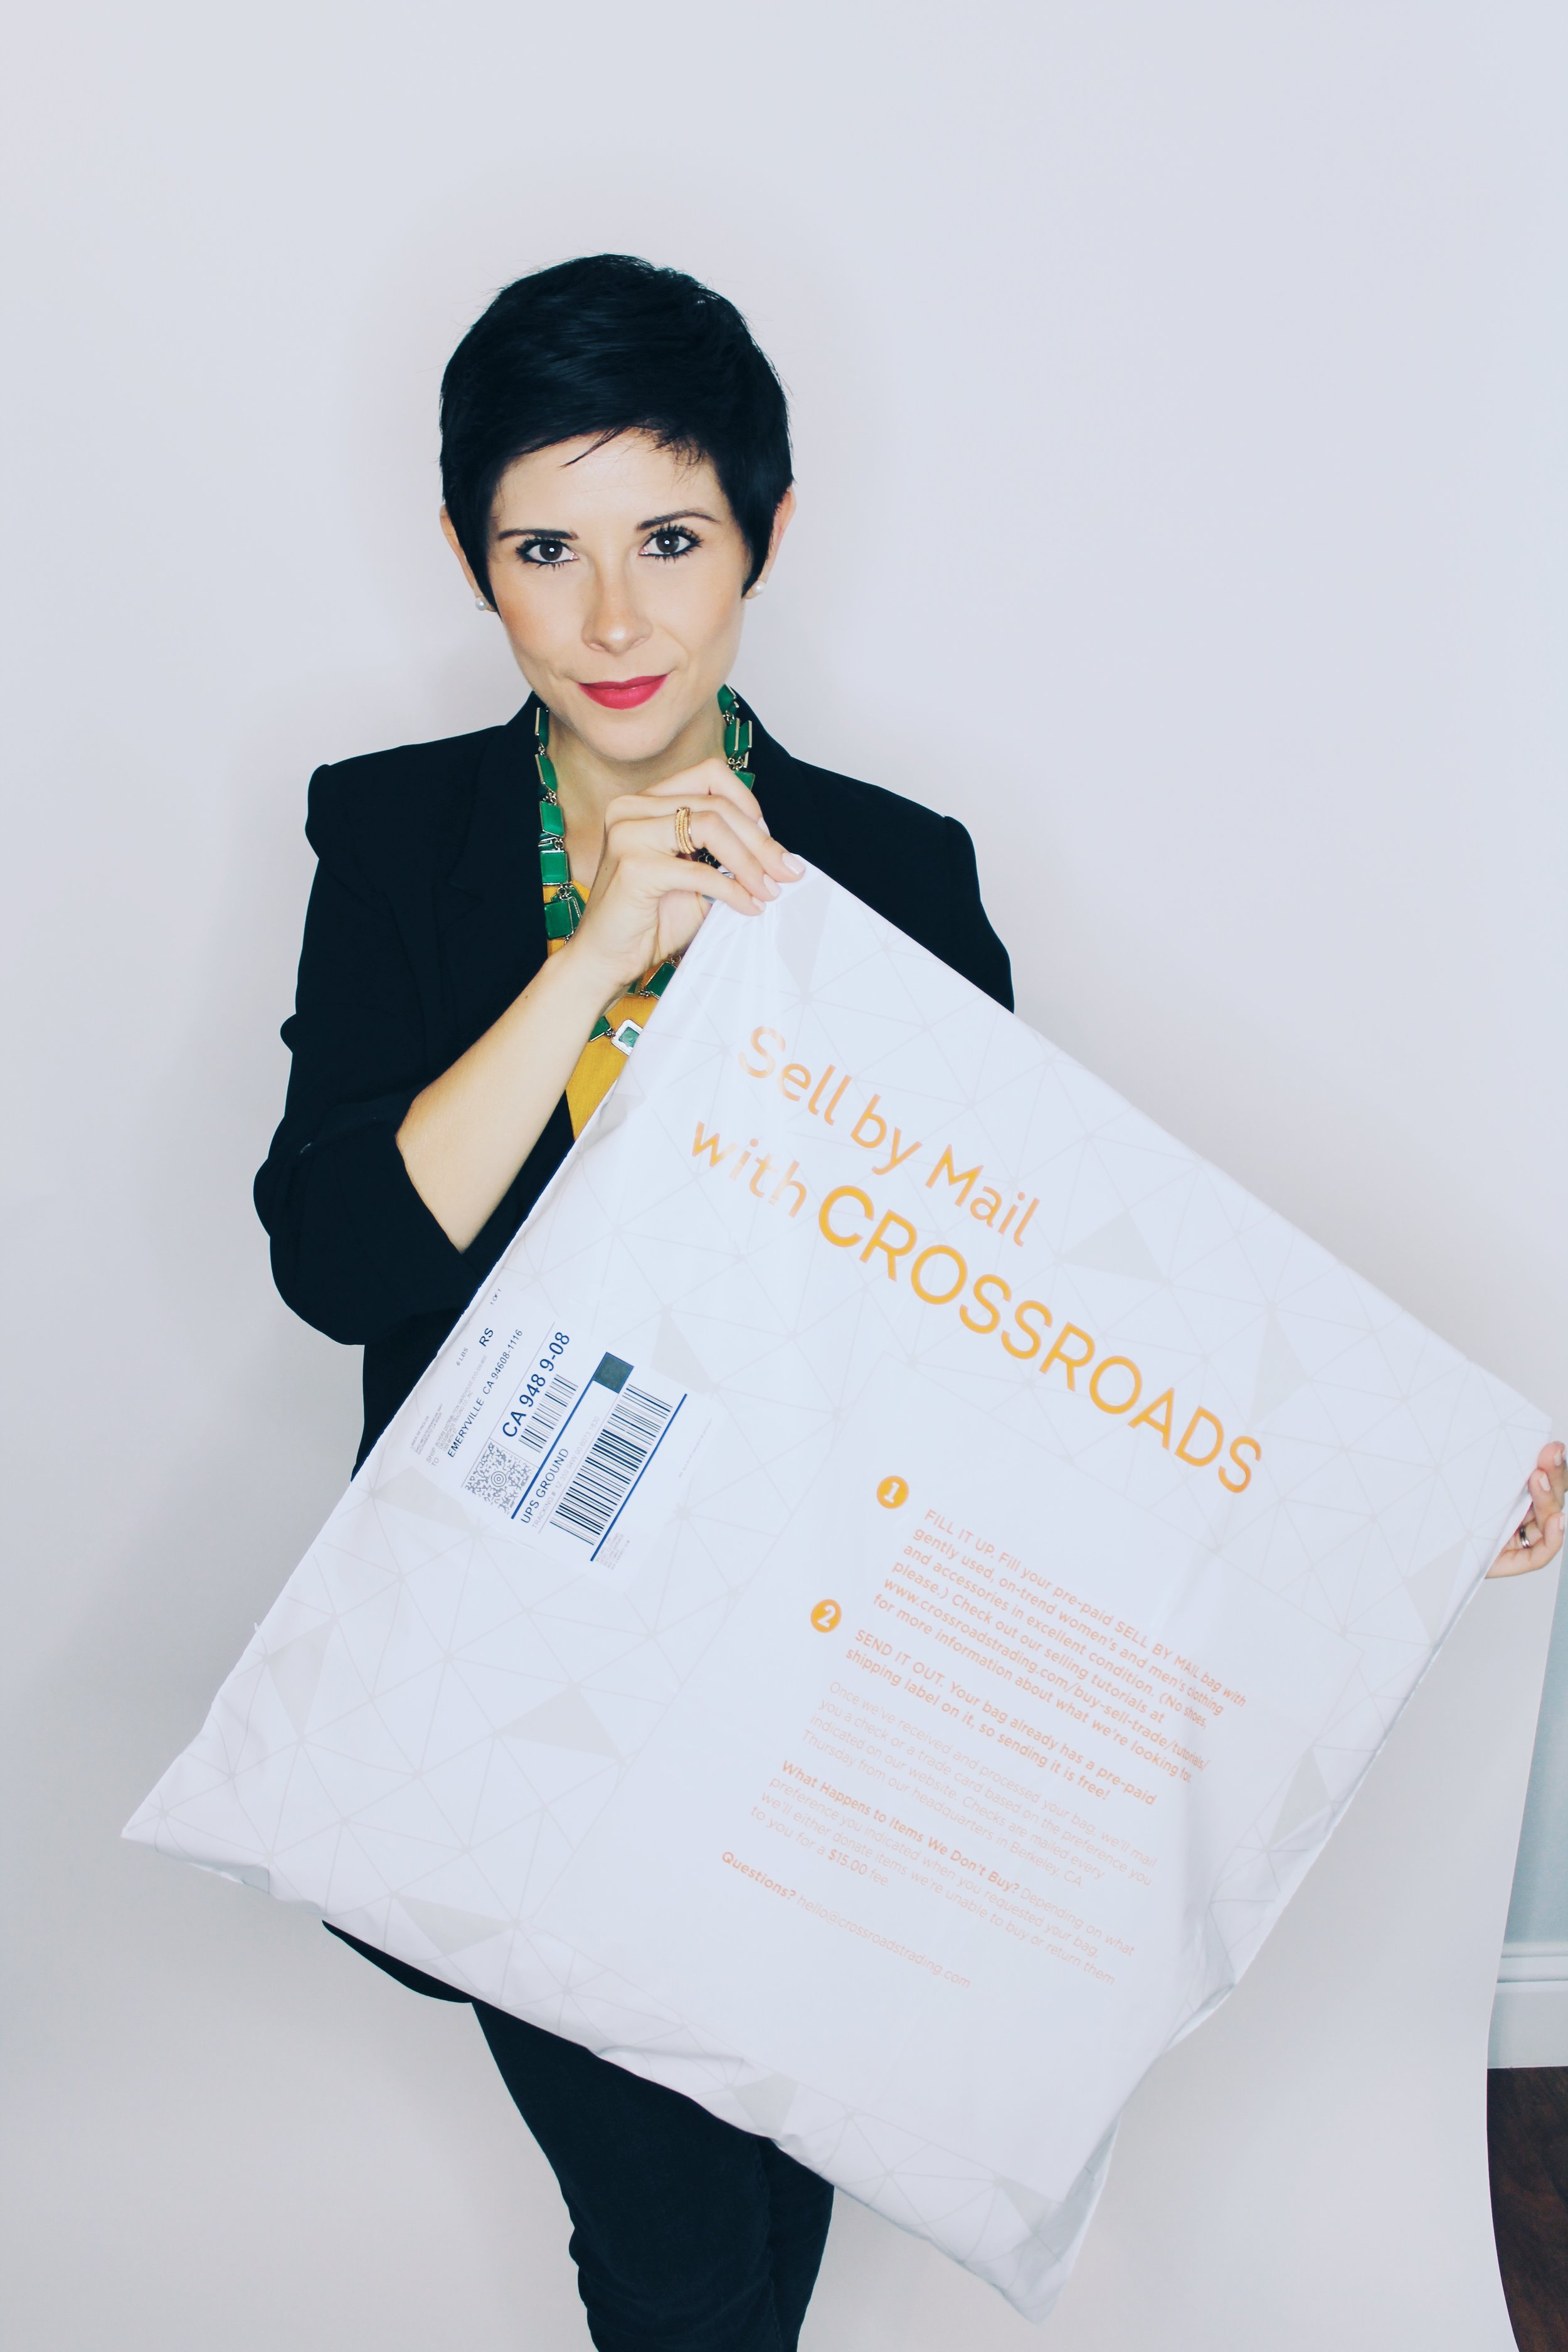 2 Simple Steps To Sell By Mail With CROSSROADS (Selling Your